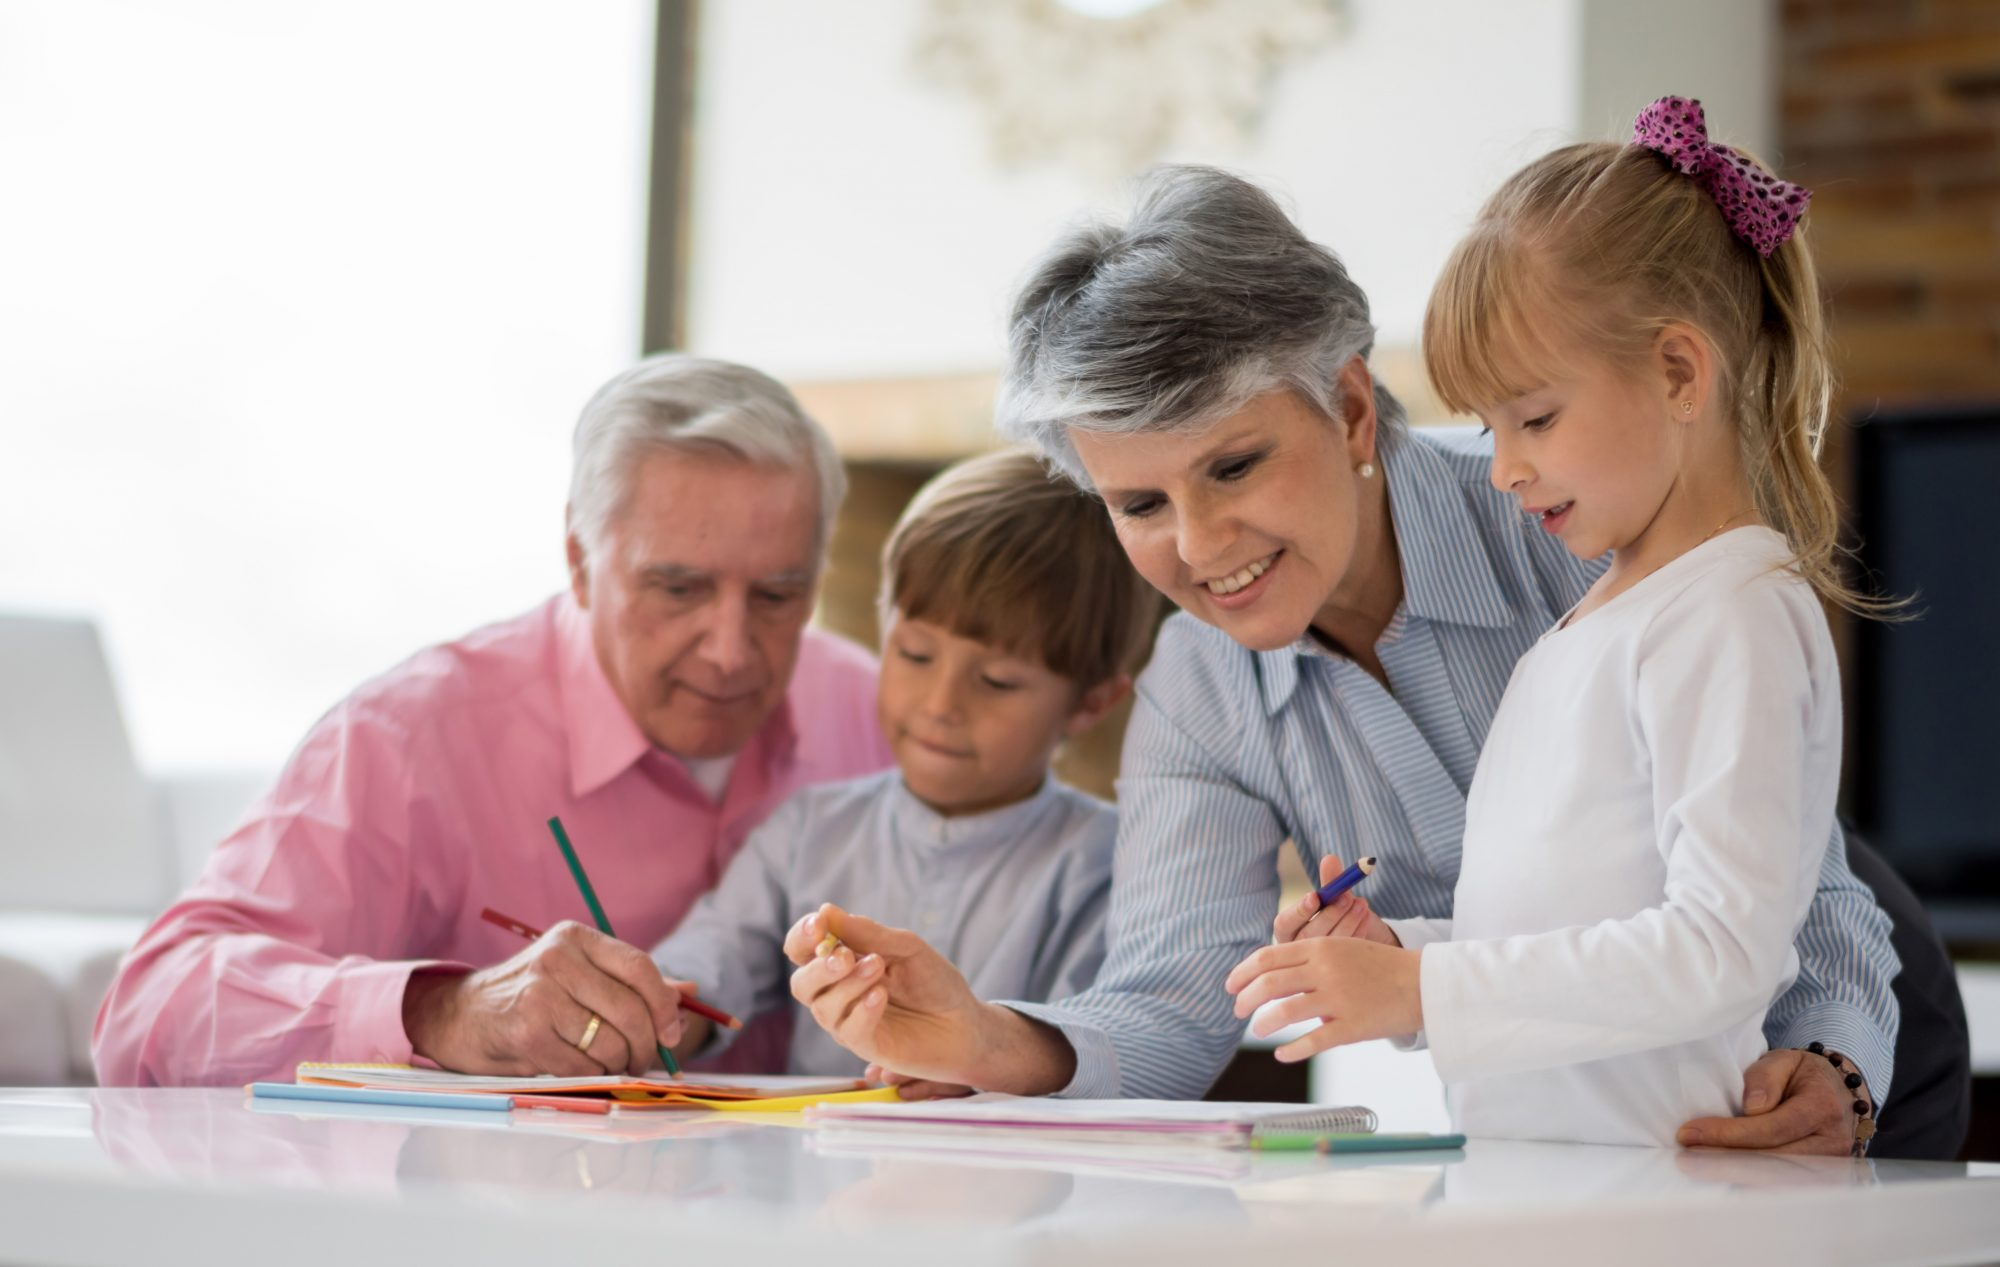 Grandparents Coloring with Grandkids